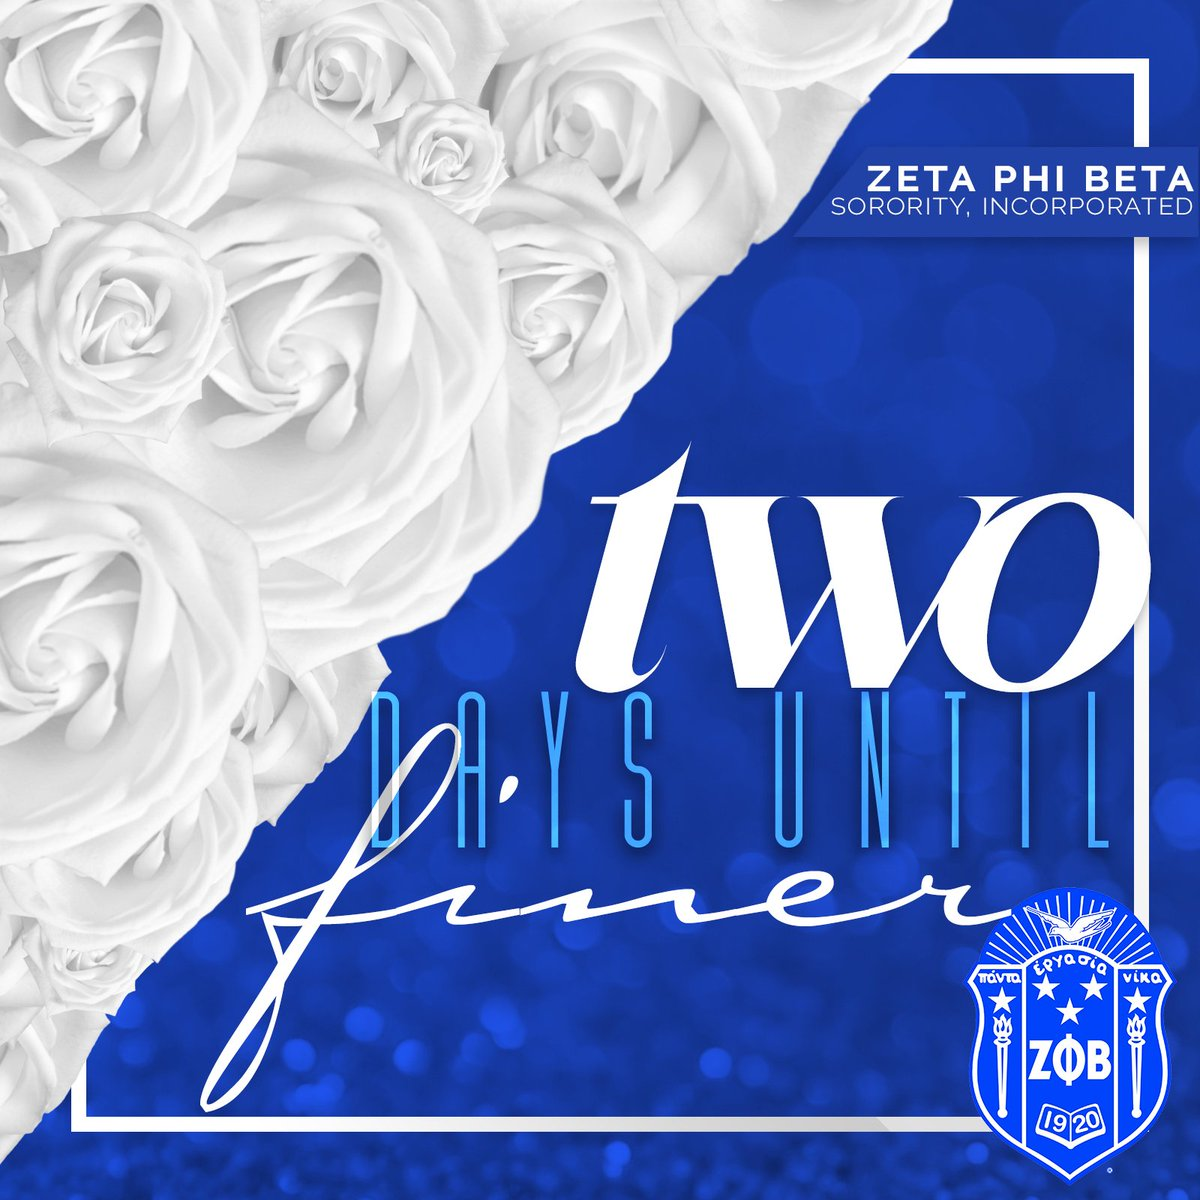 We reflect on our legacy as we embrace the journey to centennial. #99andfiner #zphib99